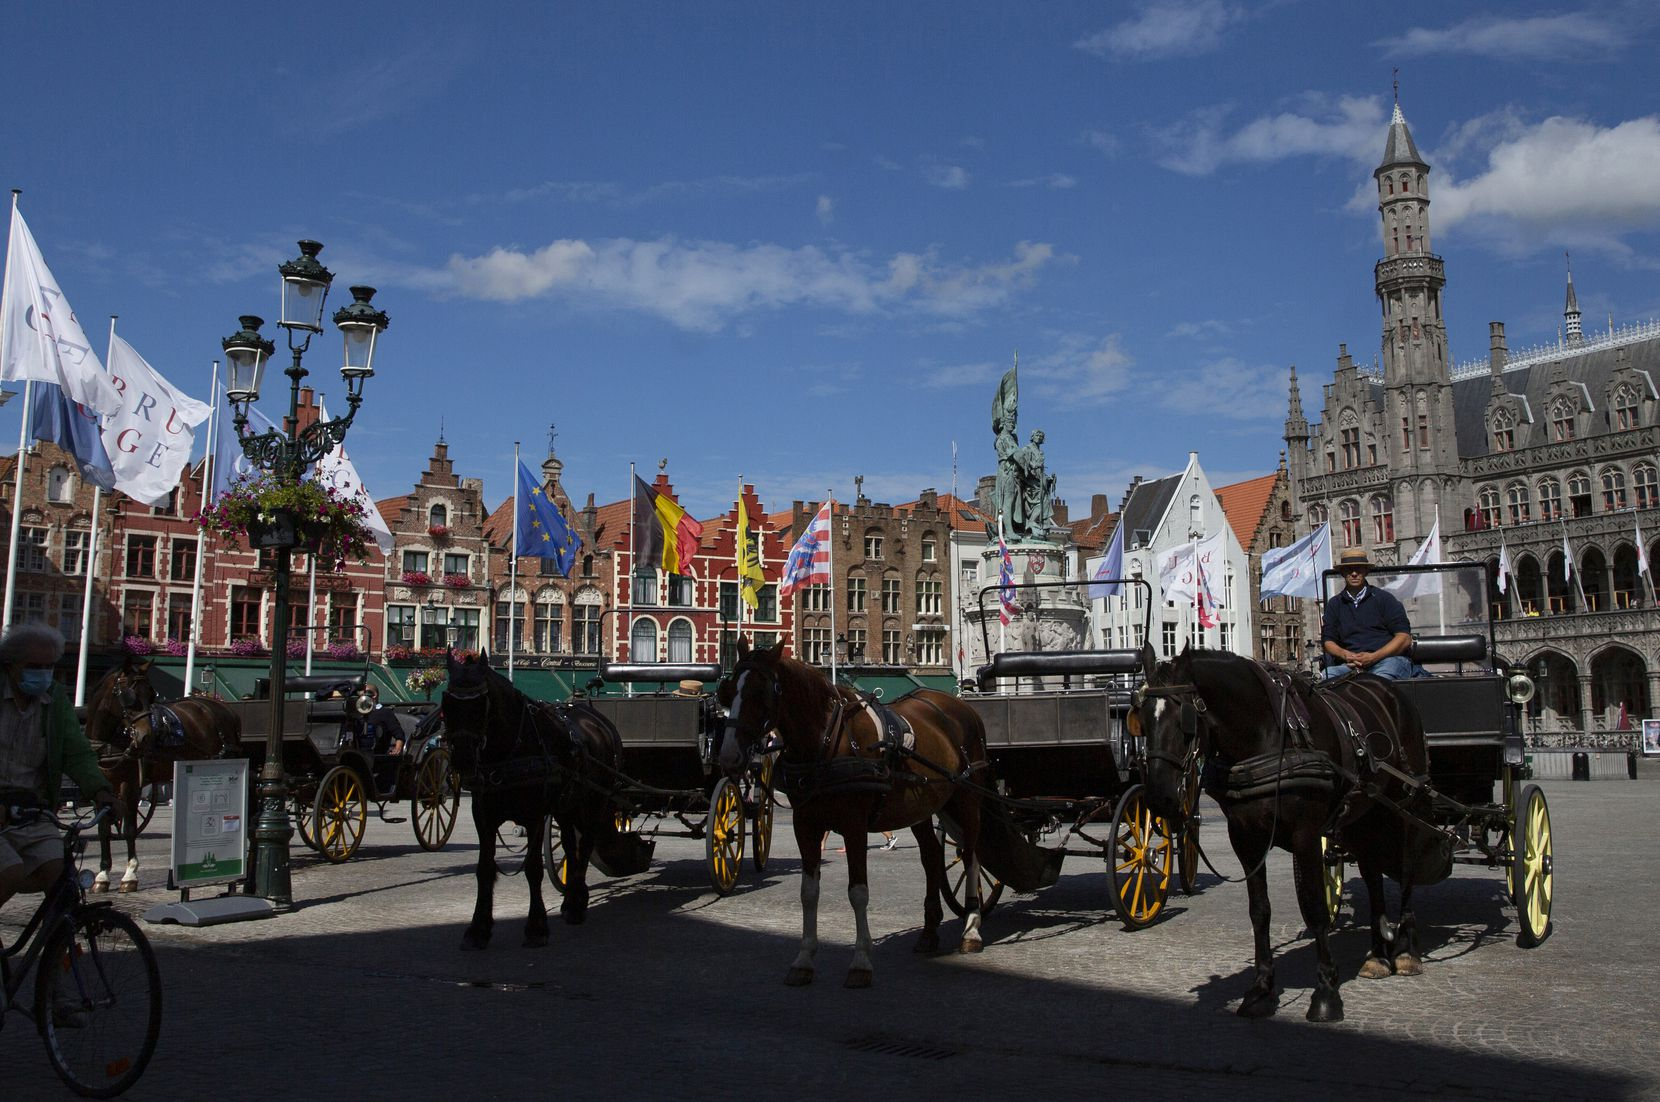 Horse and carriage tour operators wait in the center of Bruges, Belgium, as summer tourism season draws to a close.